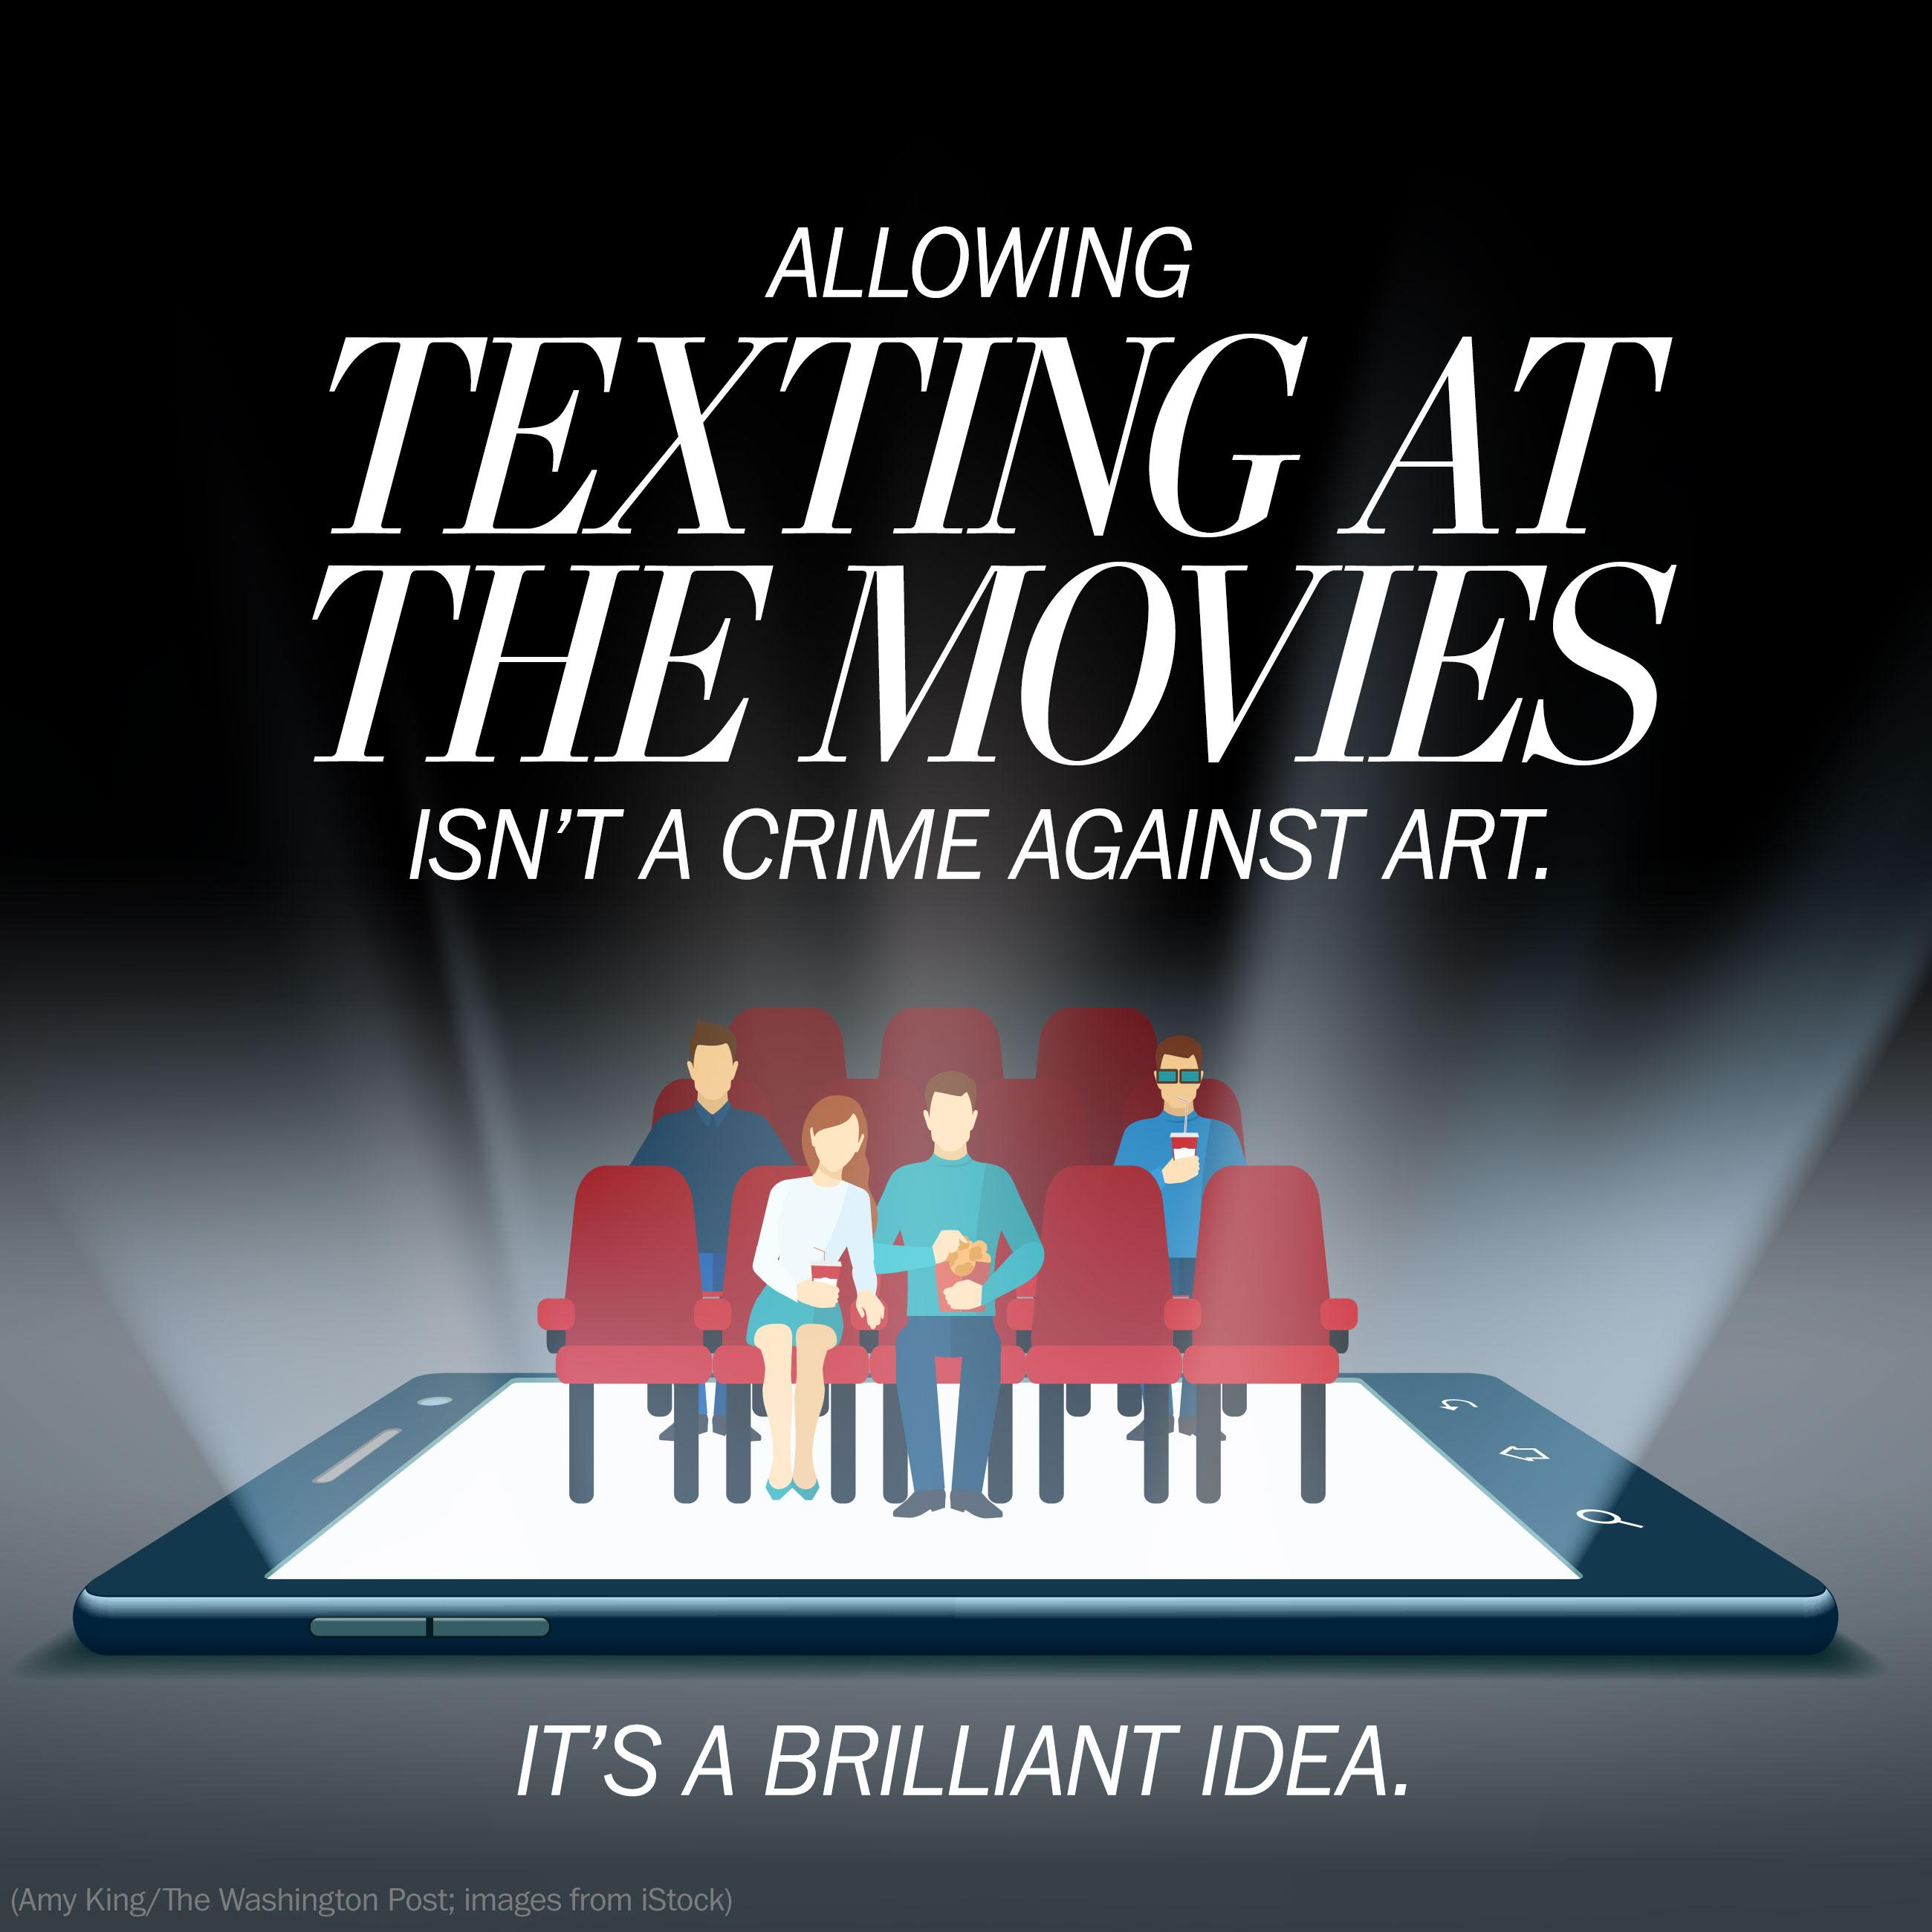 Why allowing texting in movie theaters might have been a brilliant idea